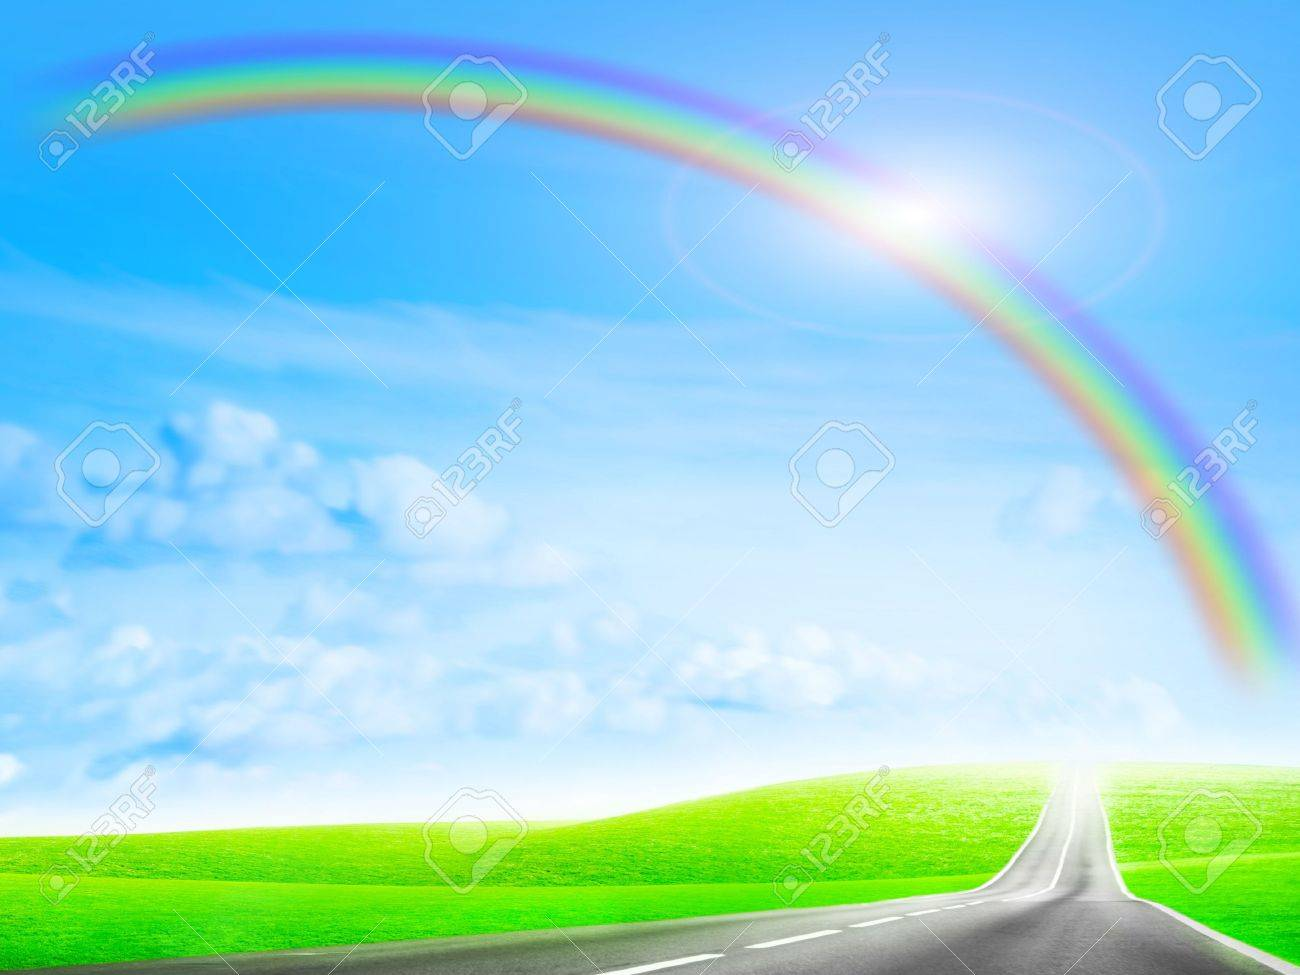 abstract scene car road on background year sky Stock Photo - 6592804